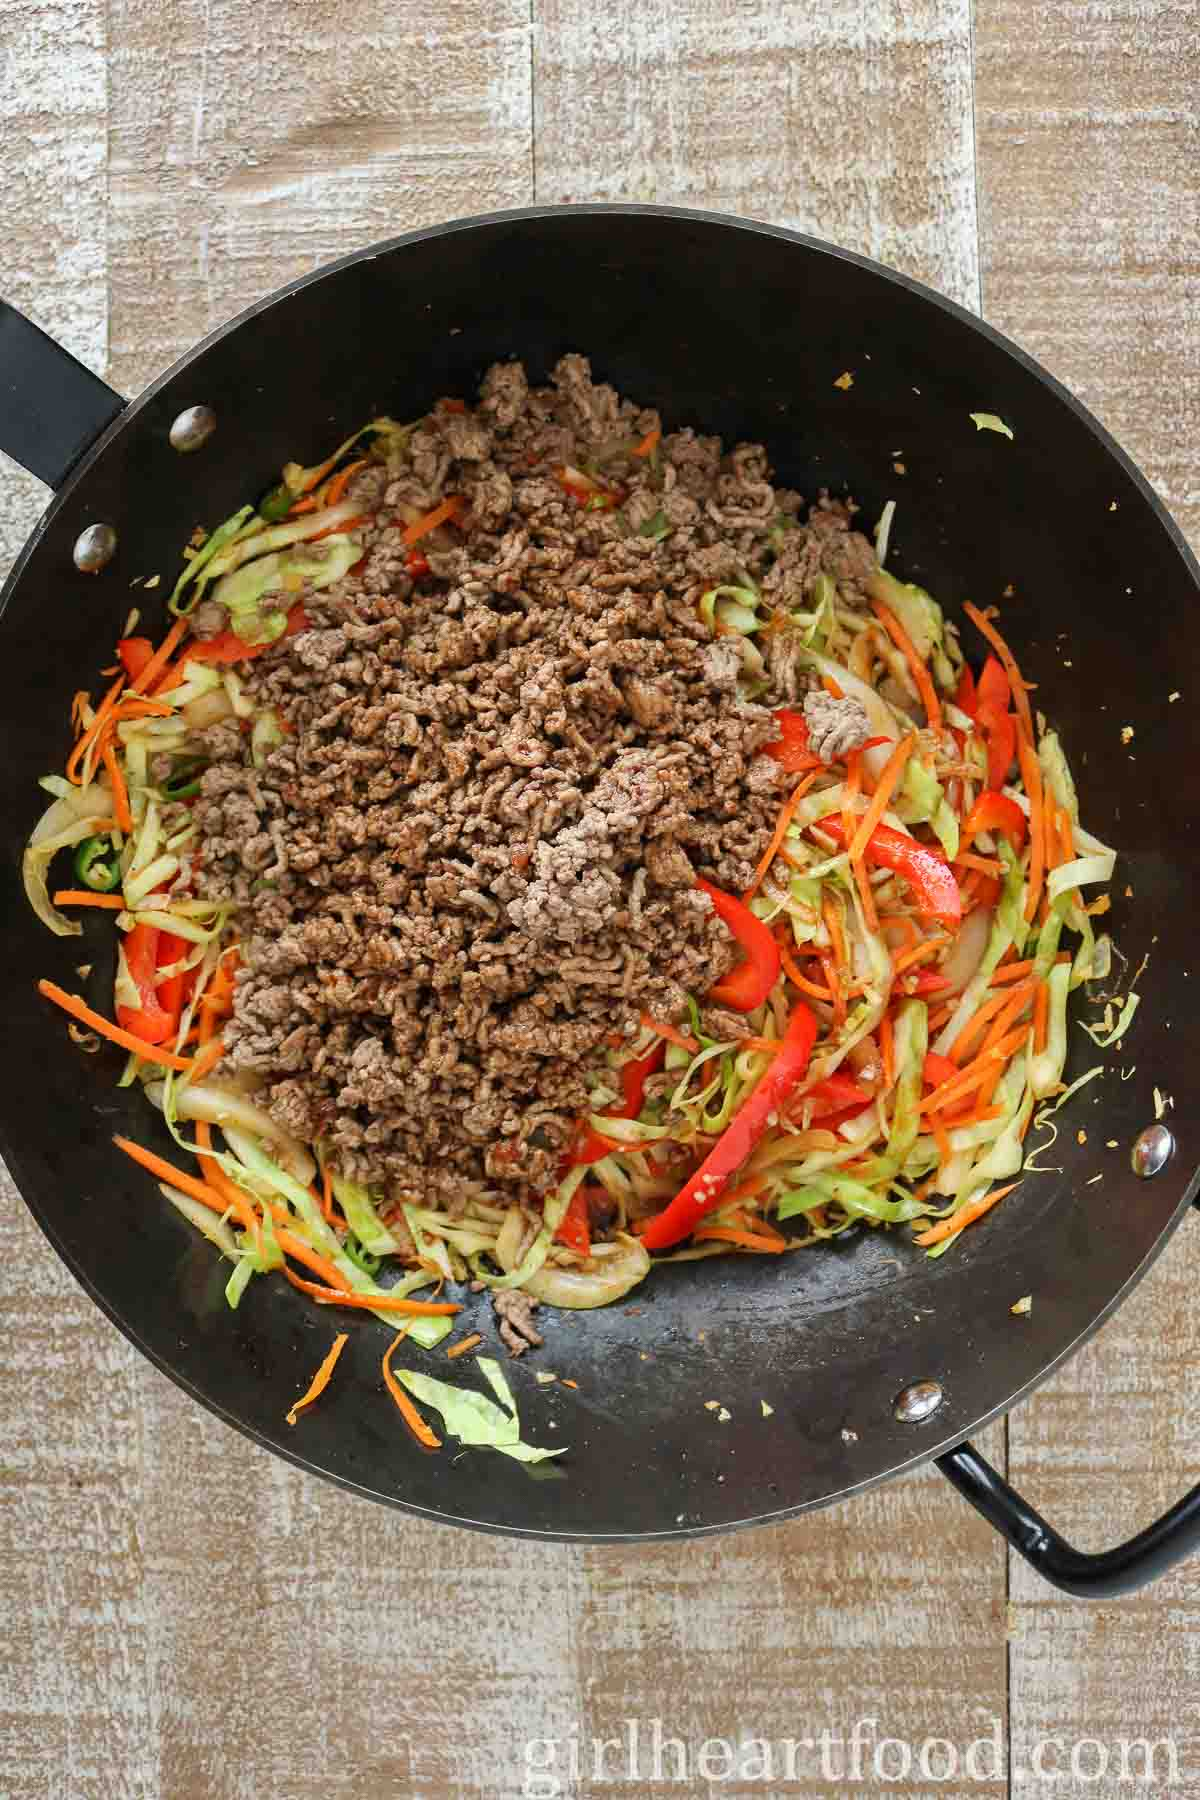 Cooked ground beef and vegetables in a wok before being mixed together.